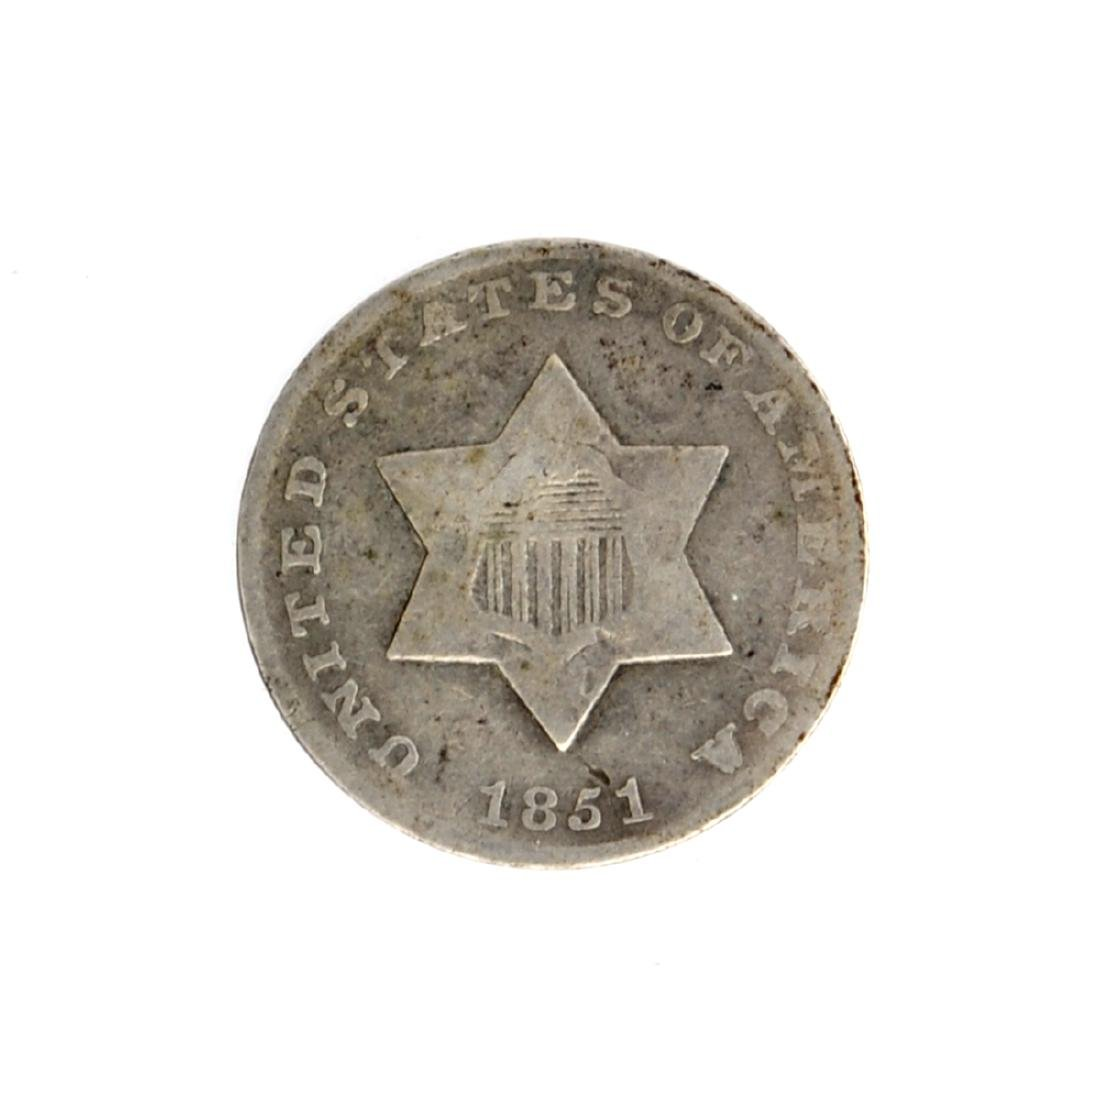 1851 Silver Three-Cent Coin